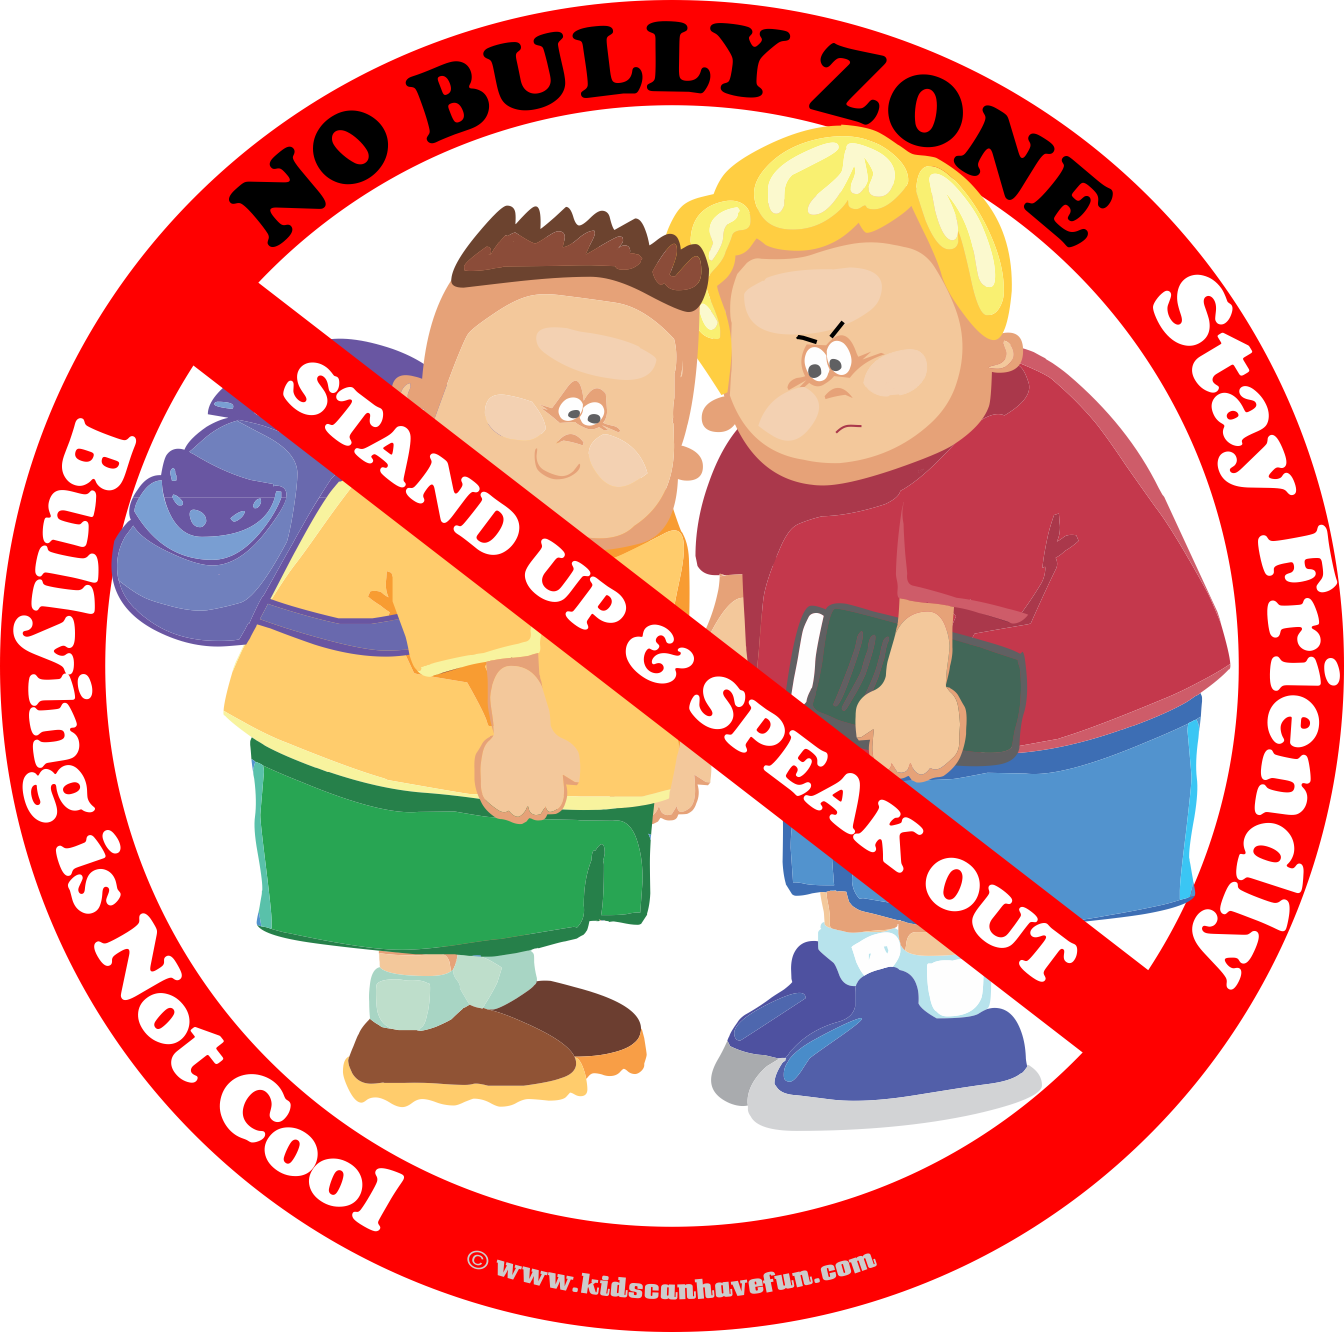 No Bully Zone Poster to hang up at school, home or daycare.